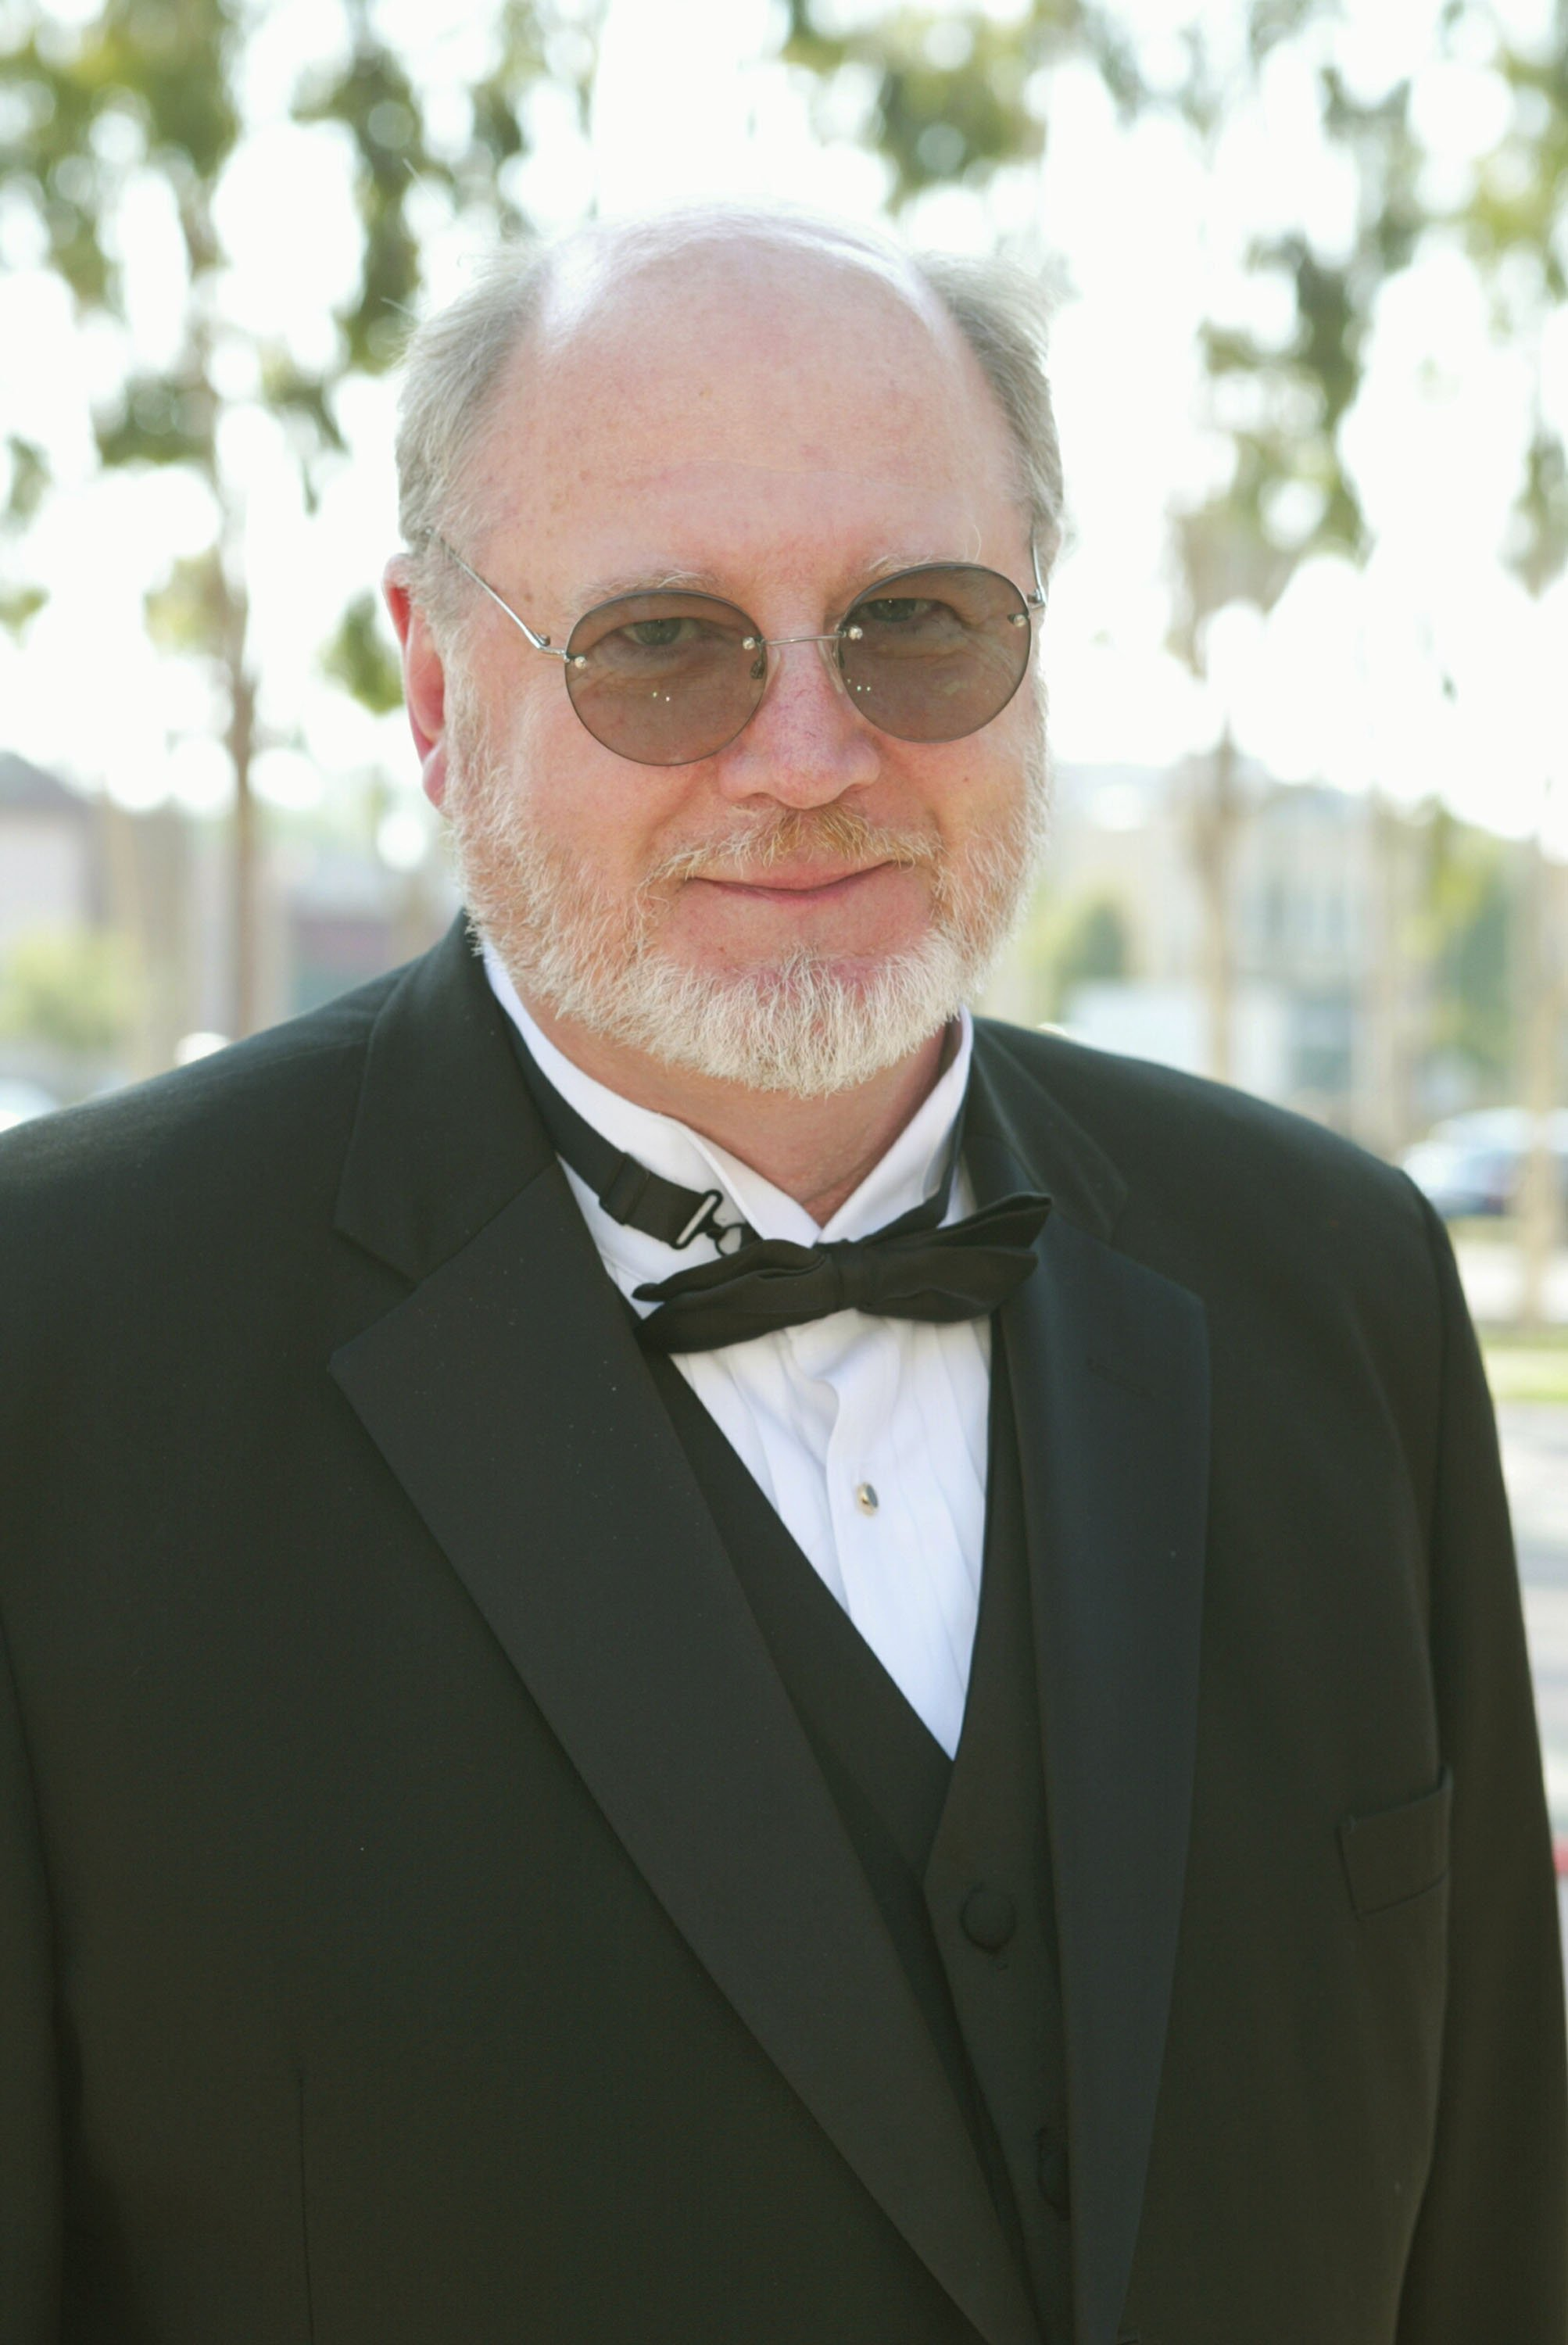 David Ogden in No. Hollywood, Ca. Saturday, June 29, 2002 | Source: Getty Images